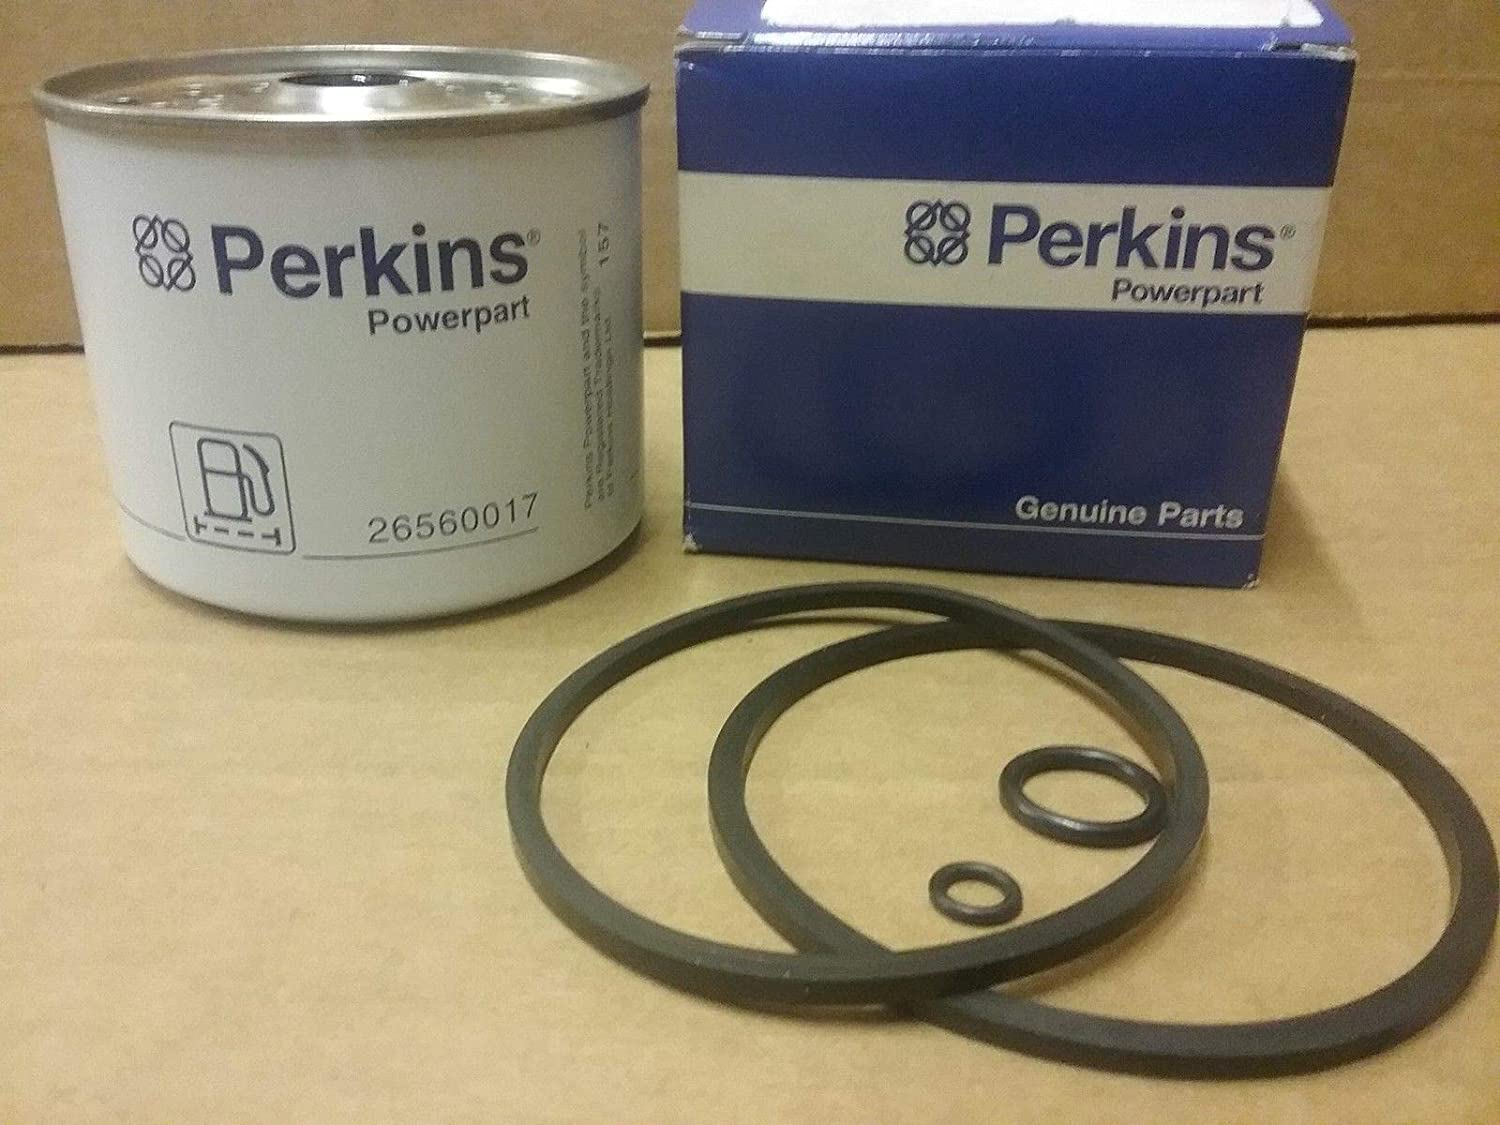 26560017 Genuine Perkins Engine Fuel Filter Kit Element Filters Replacement 26561117 P556245 Bf825 Ff167 Automotive